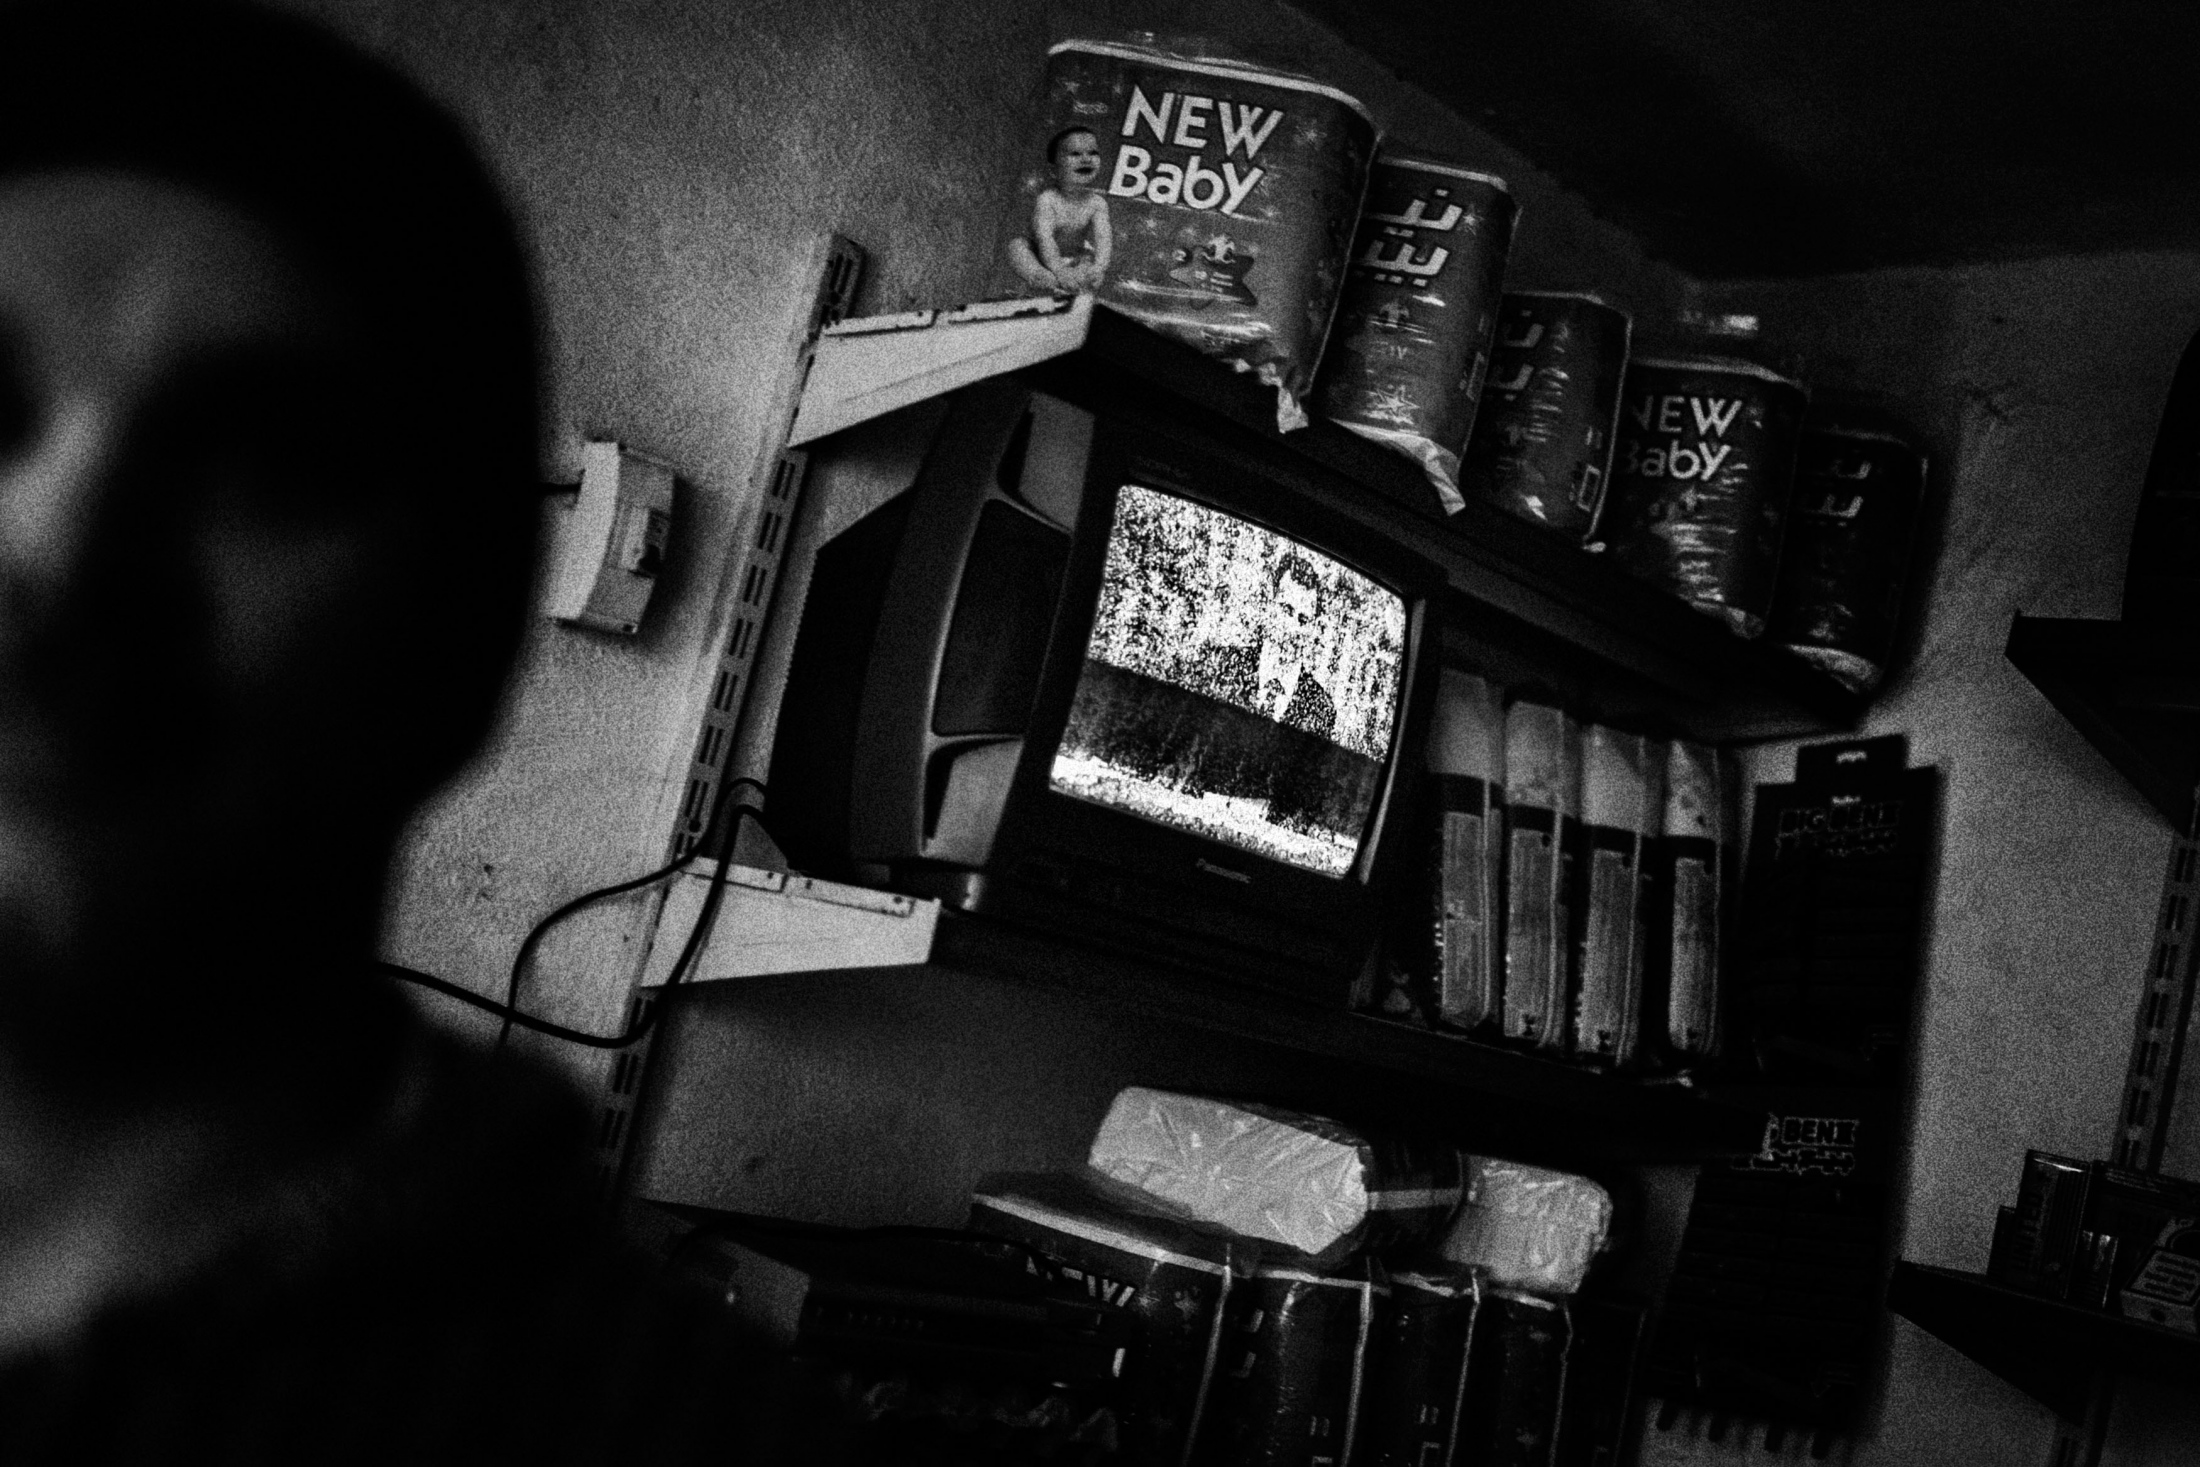 """A TV with the speech of Assad president in a shop in the Old City of Aleppo, Syria, Wednesday, Jan. 6, 2013. The United Nations estimated that more than 400,000 people have been killed in Syria's 60-month-old uprising against authoritarian rule, a toll one-third higher than what anti-regime activists had counted. The U.N. human rights chief called the toll """"truly shocking."""" Copyright: Spanish Photojournalist Andoni Lubaki"""